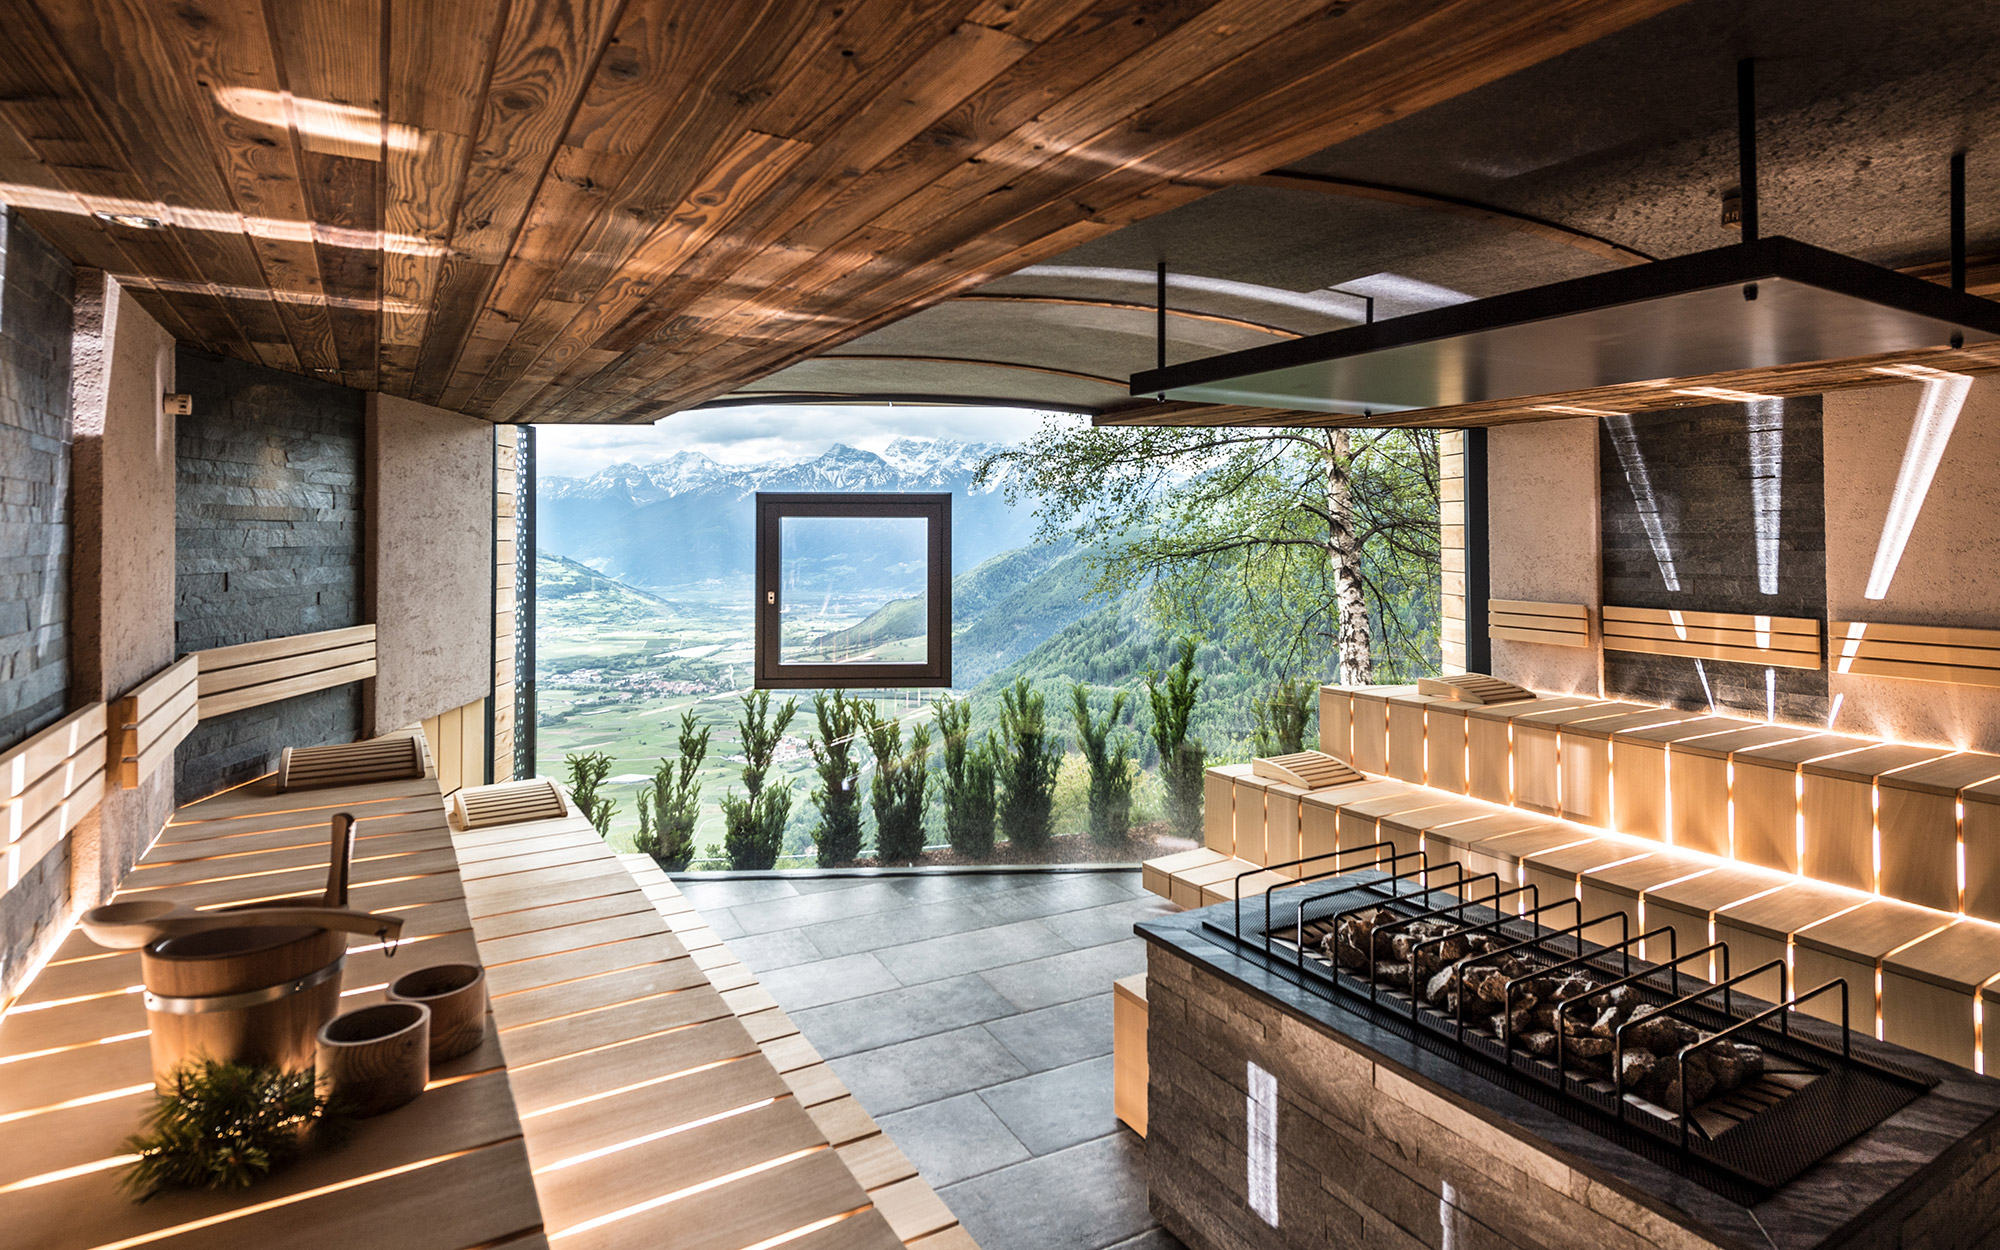 Alpin relax hotel das gerstl sauna world for Design hotel vinschgau